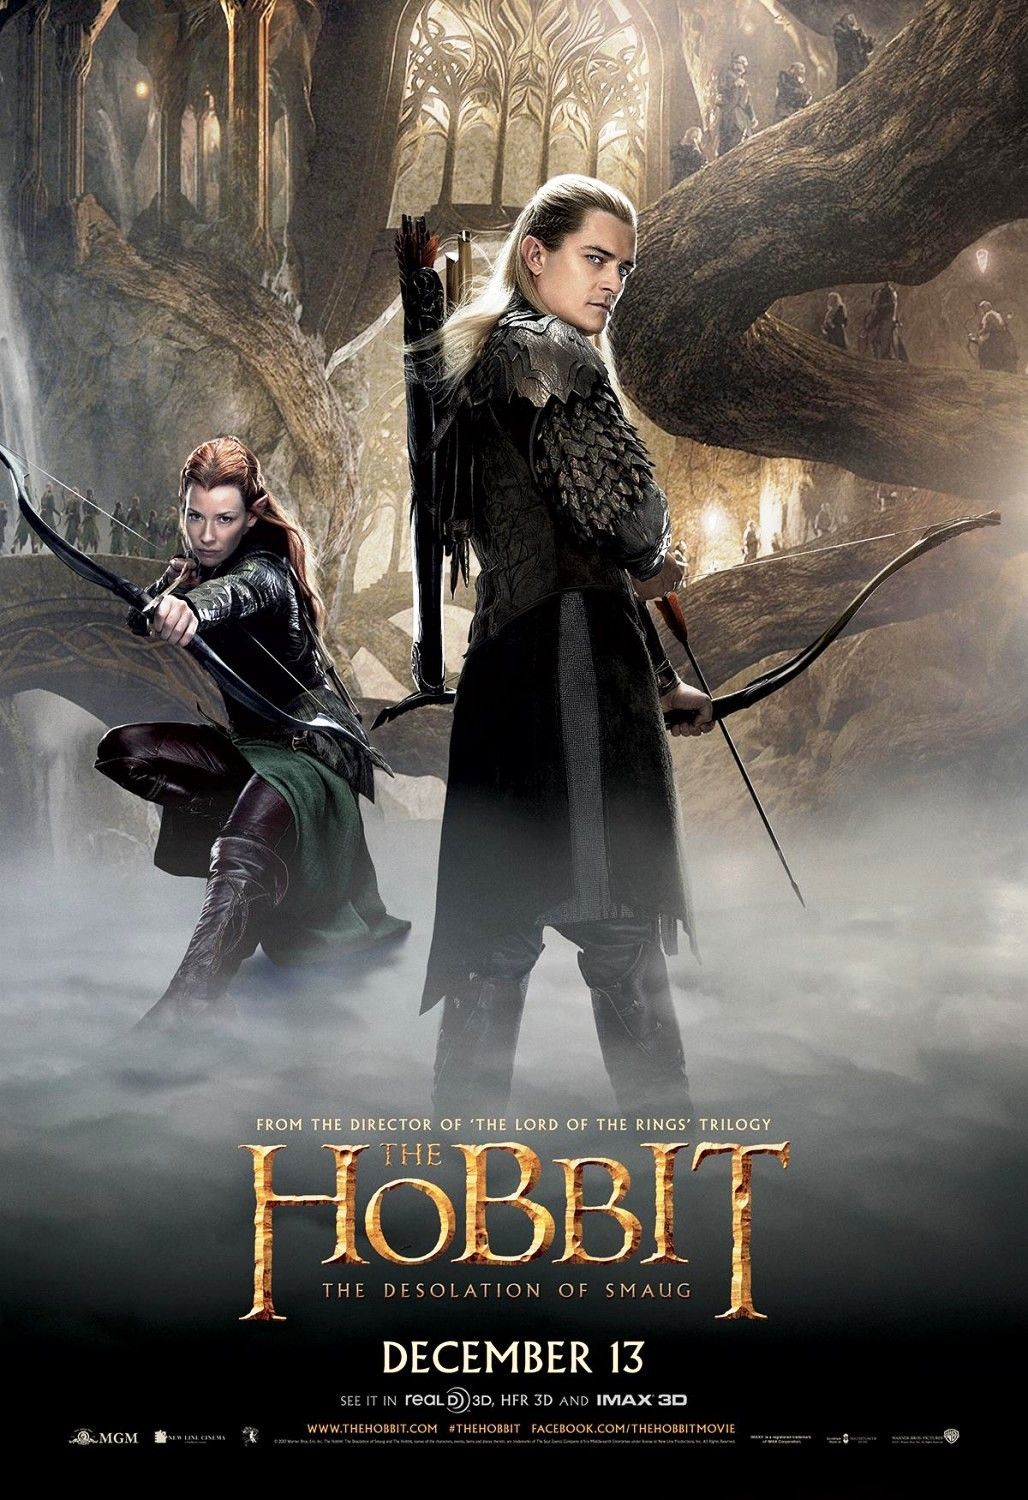 The Hobbit: The Desolation of Smaug (2013) Directed By: Peter Jackson - Movie Review - Image 1